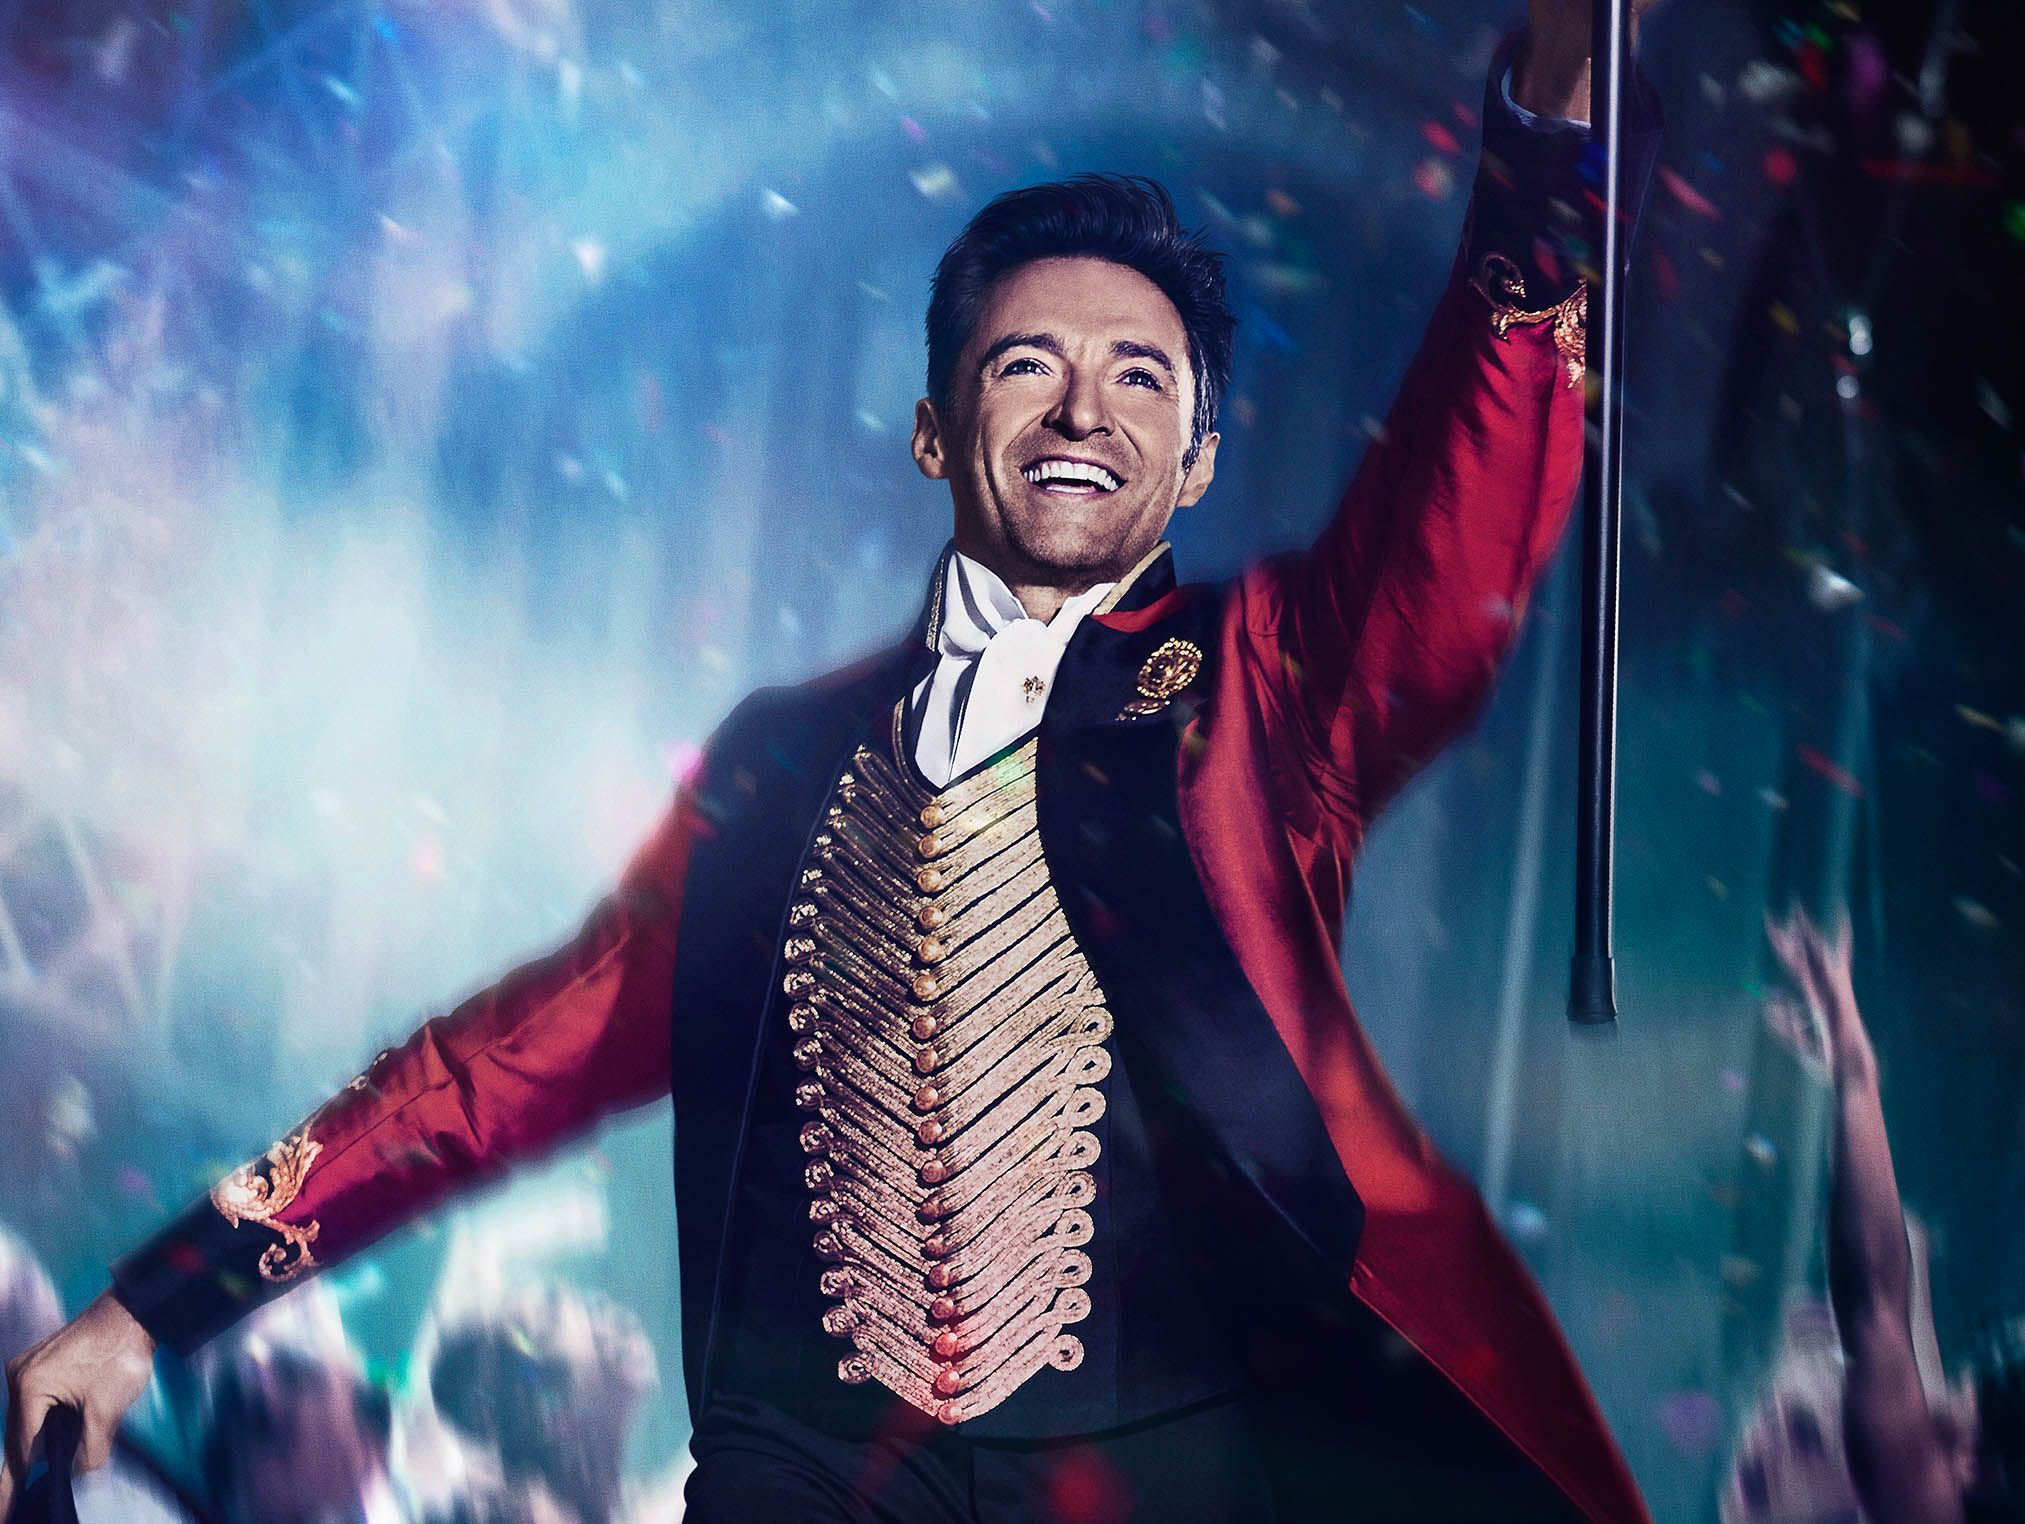 4 The Greatest Showman HD Wallpapers | Backgrounds - Wallpaper Abyss